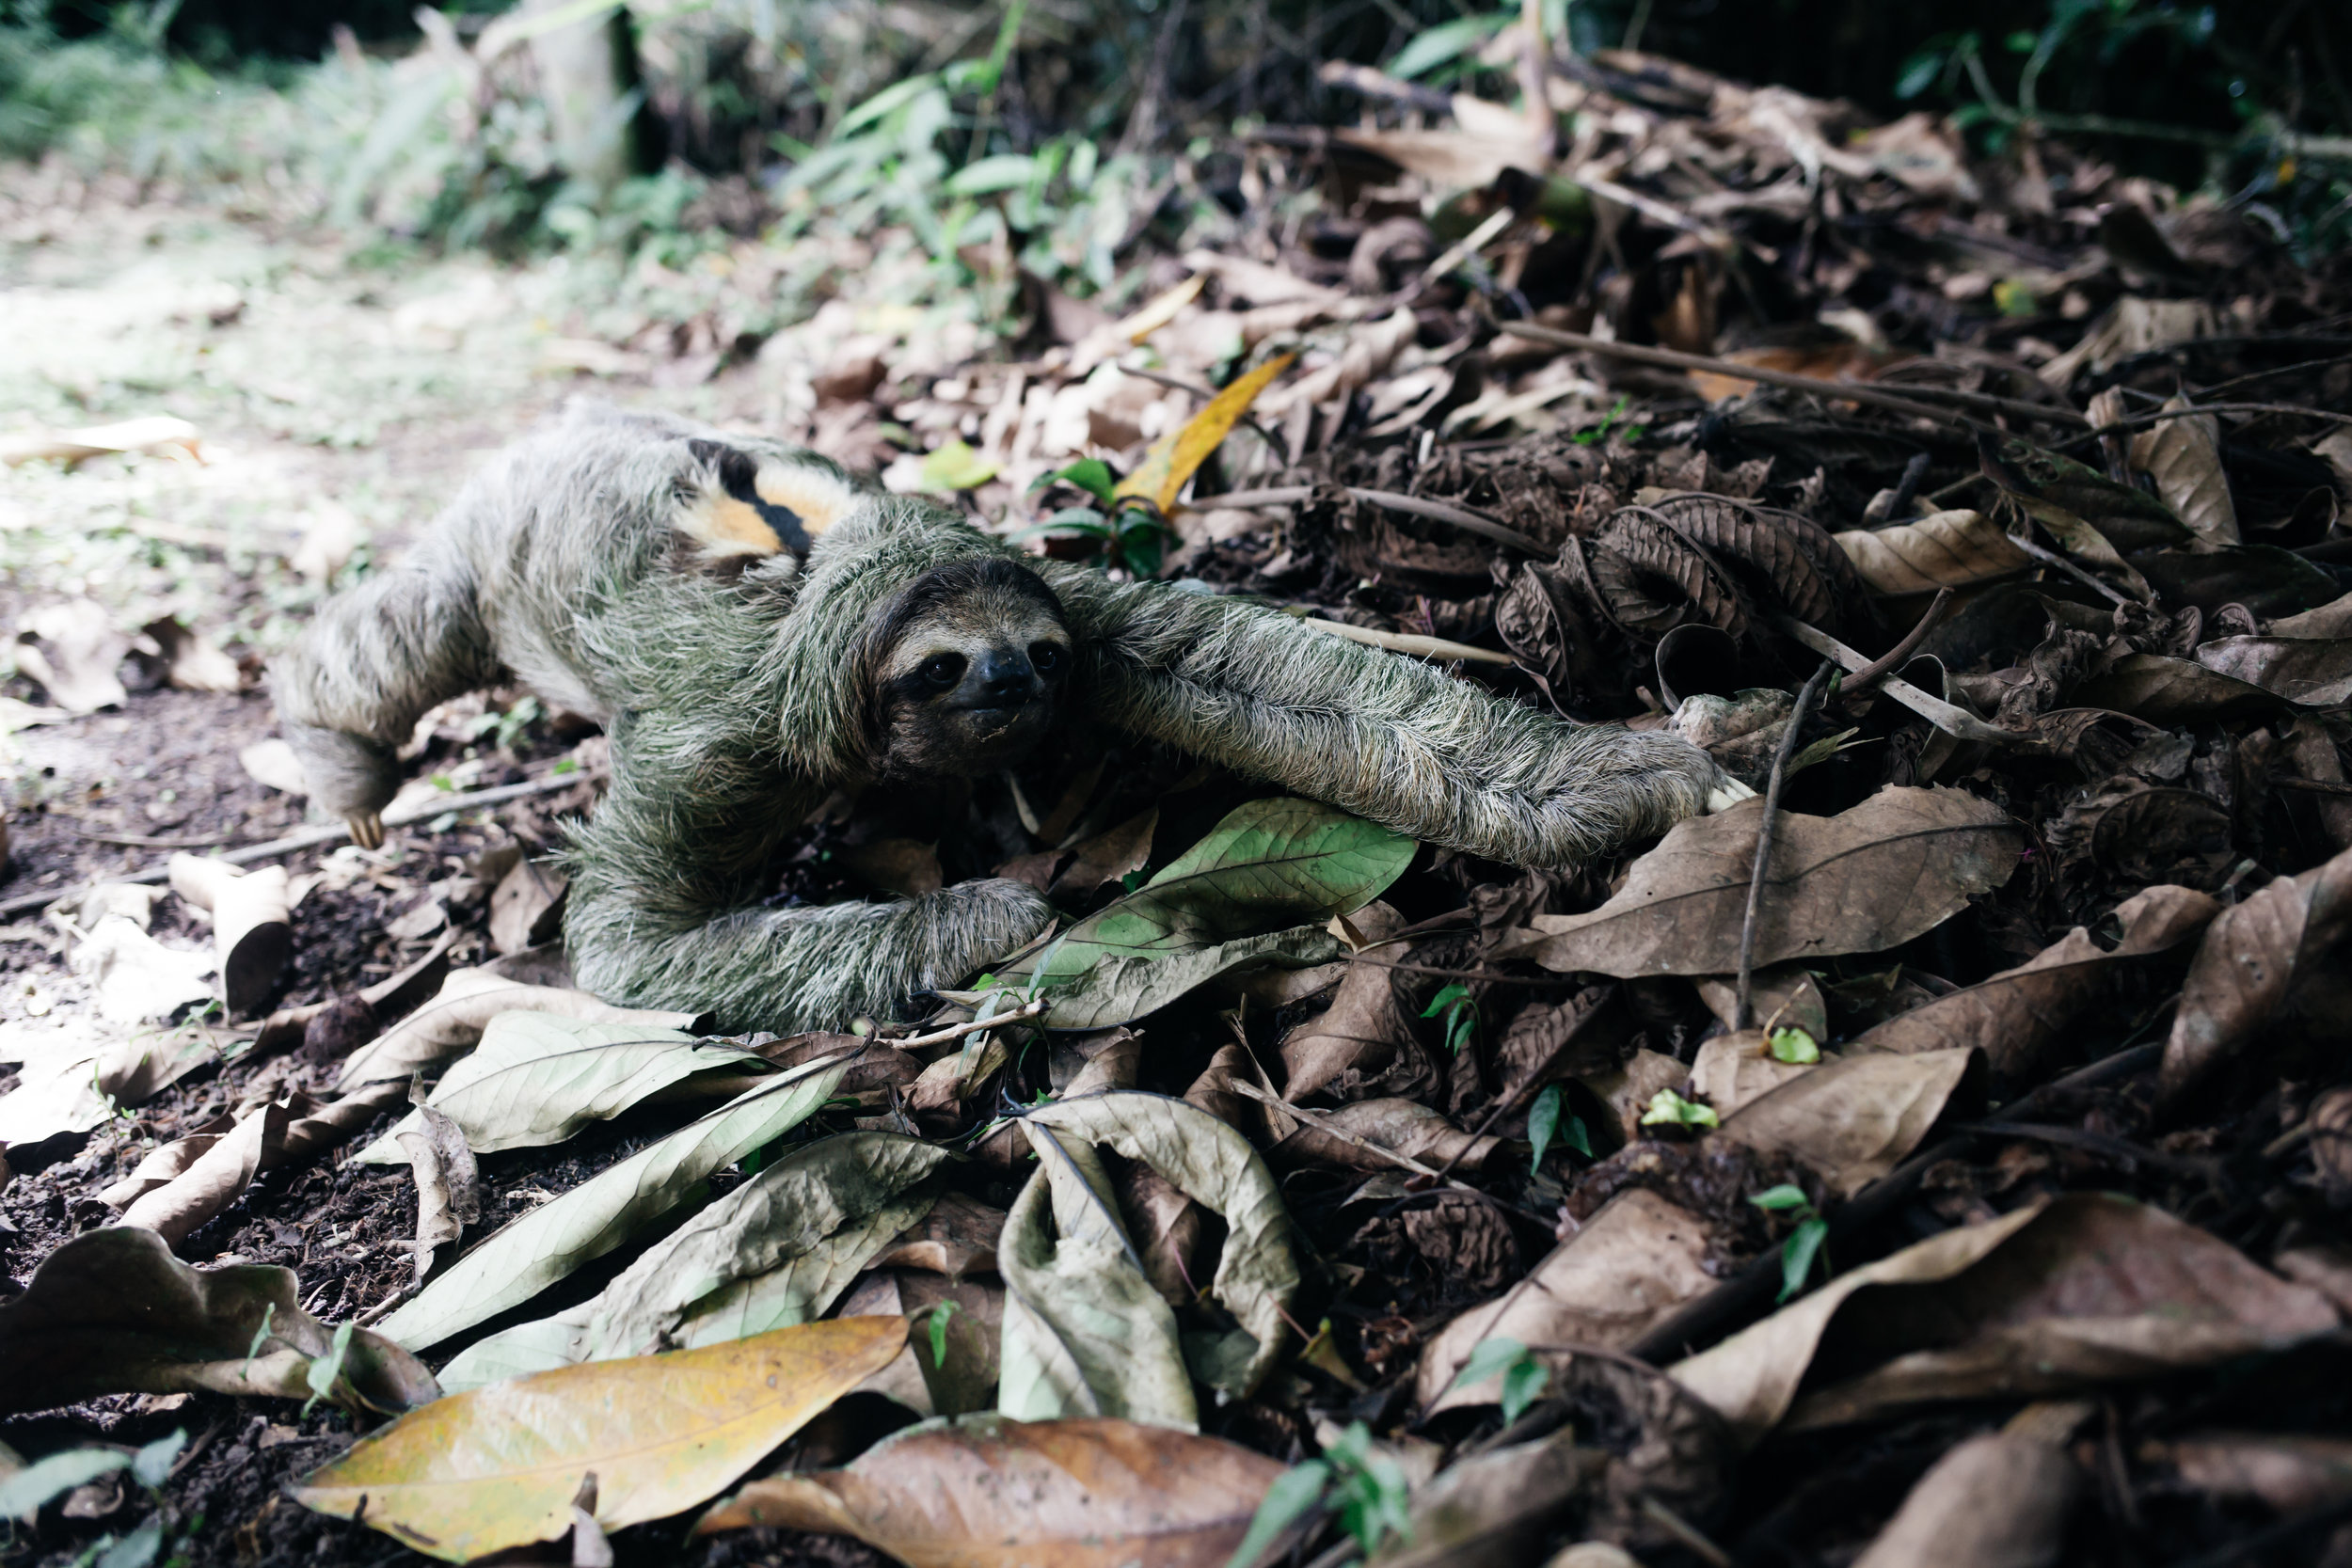 costarica_airbnb_sloth (36 of 49).jpg